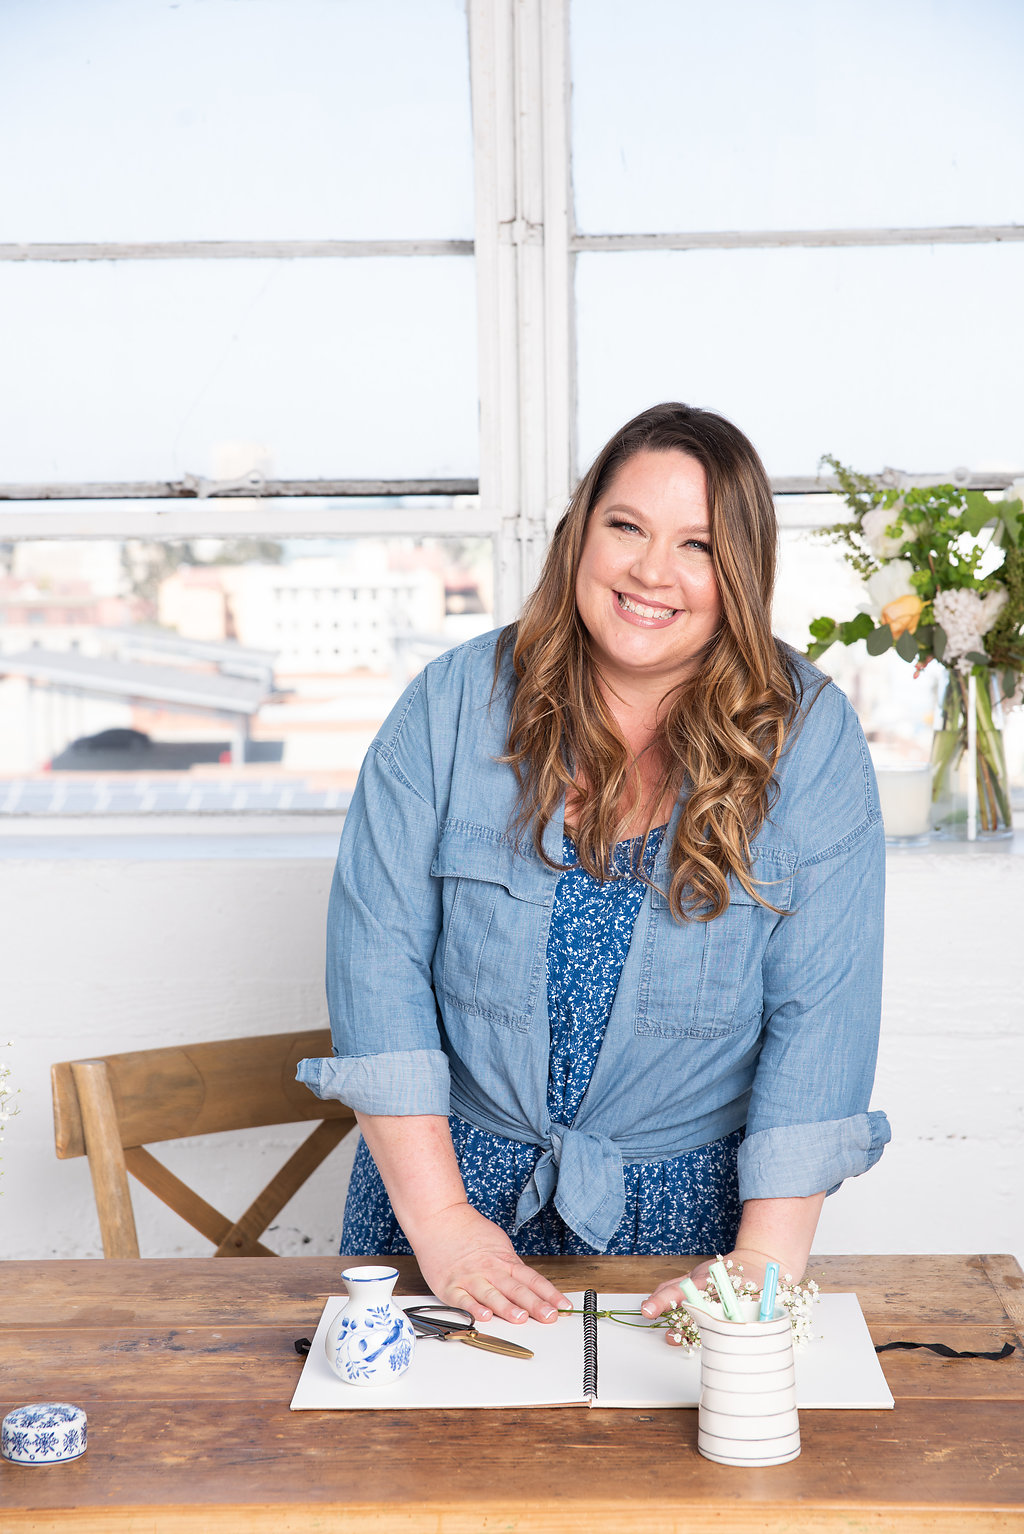 Hilary Hartling, brand strategist and coach and founder of Brandpolish Co.